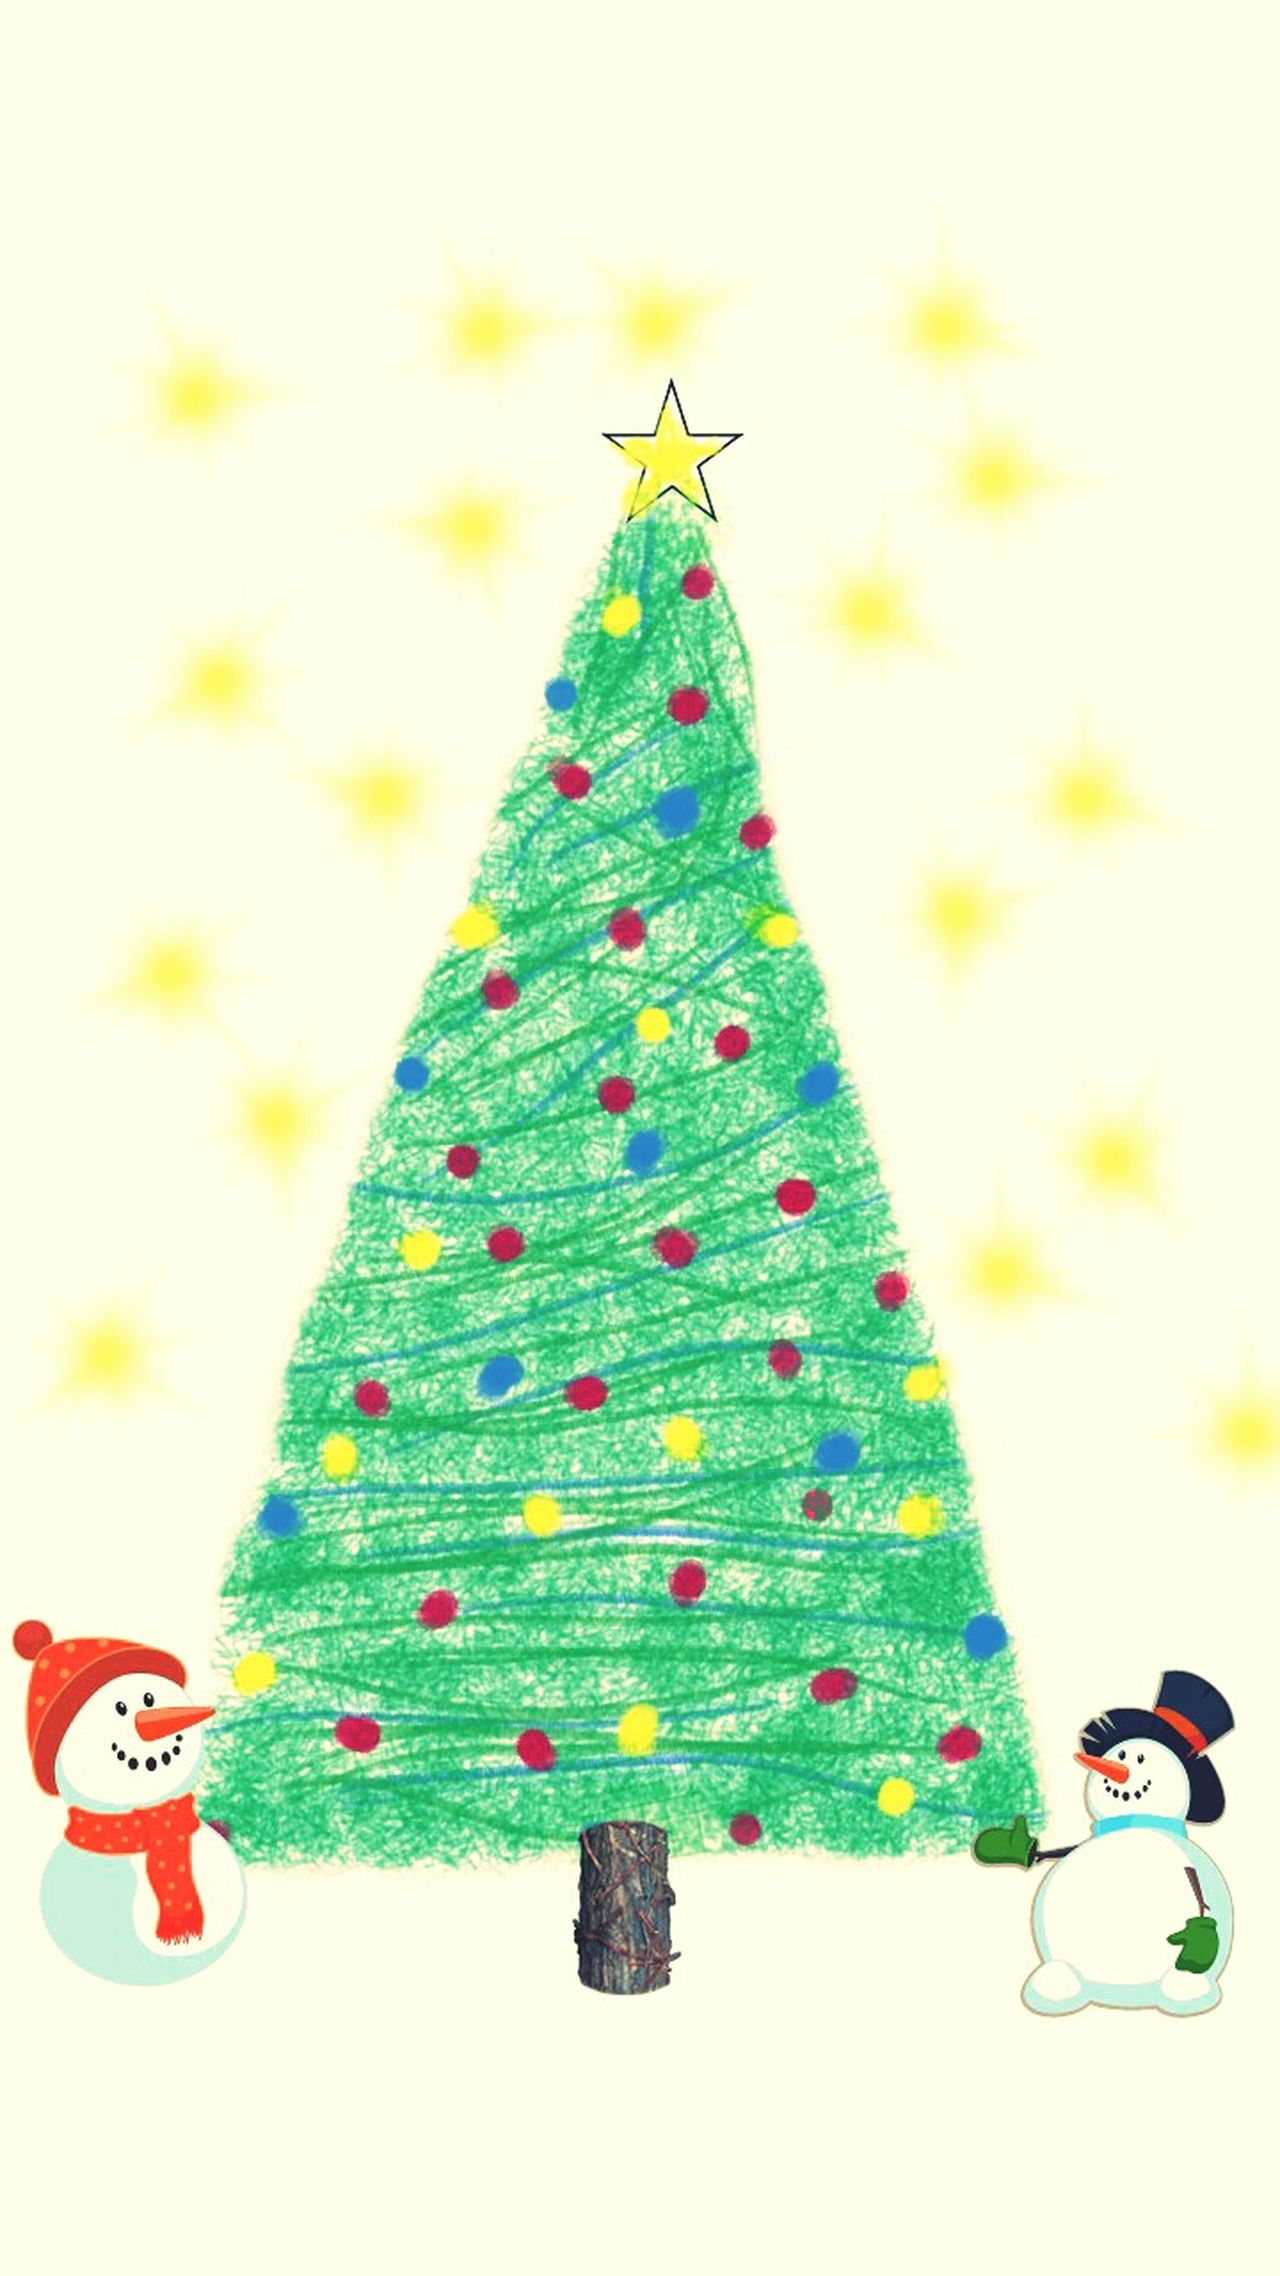 Happy Christmas Snowmen Tree Christmas Tree Decorating My Drawings Art And Craft This Is My Art!!! Having Fun :) Holiday Season Its Coming,,